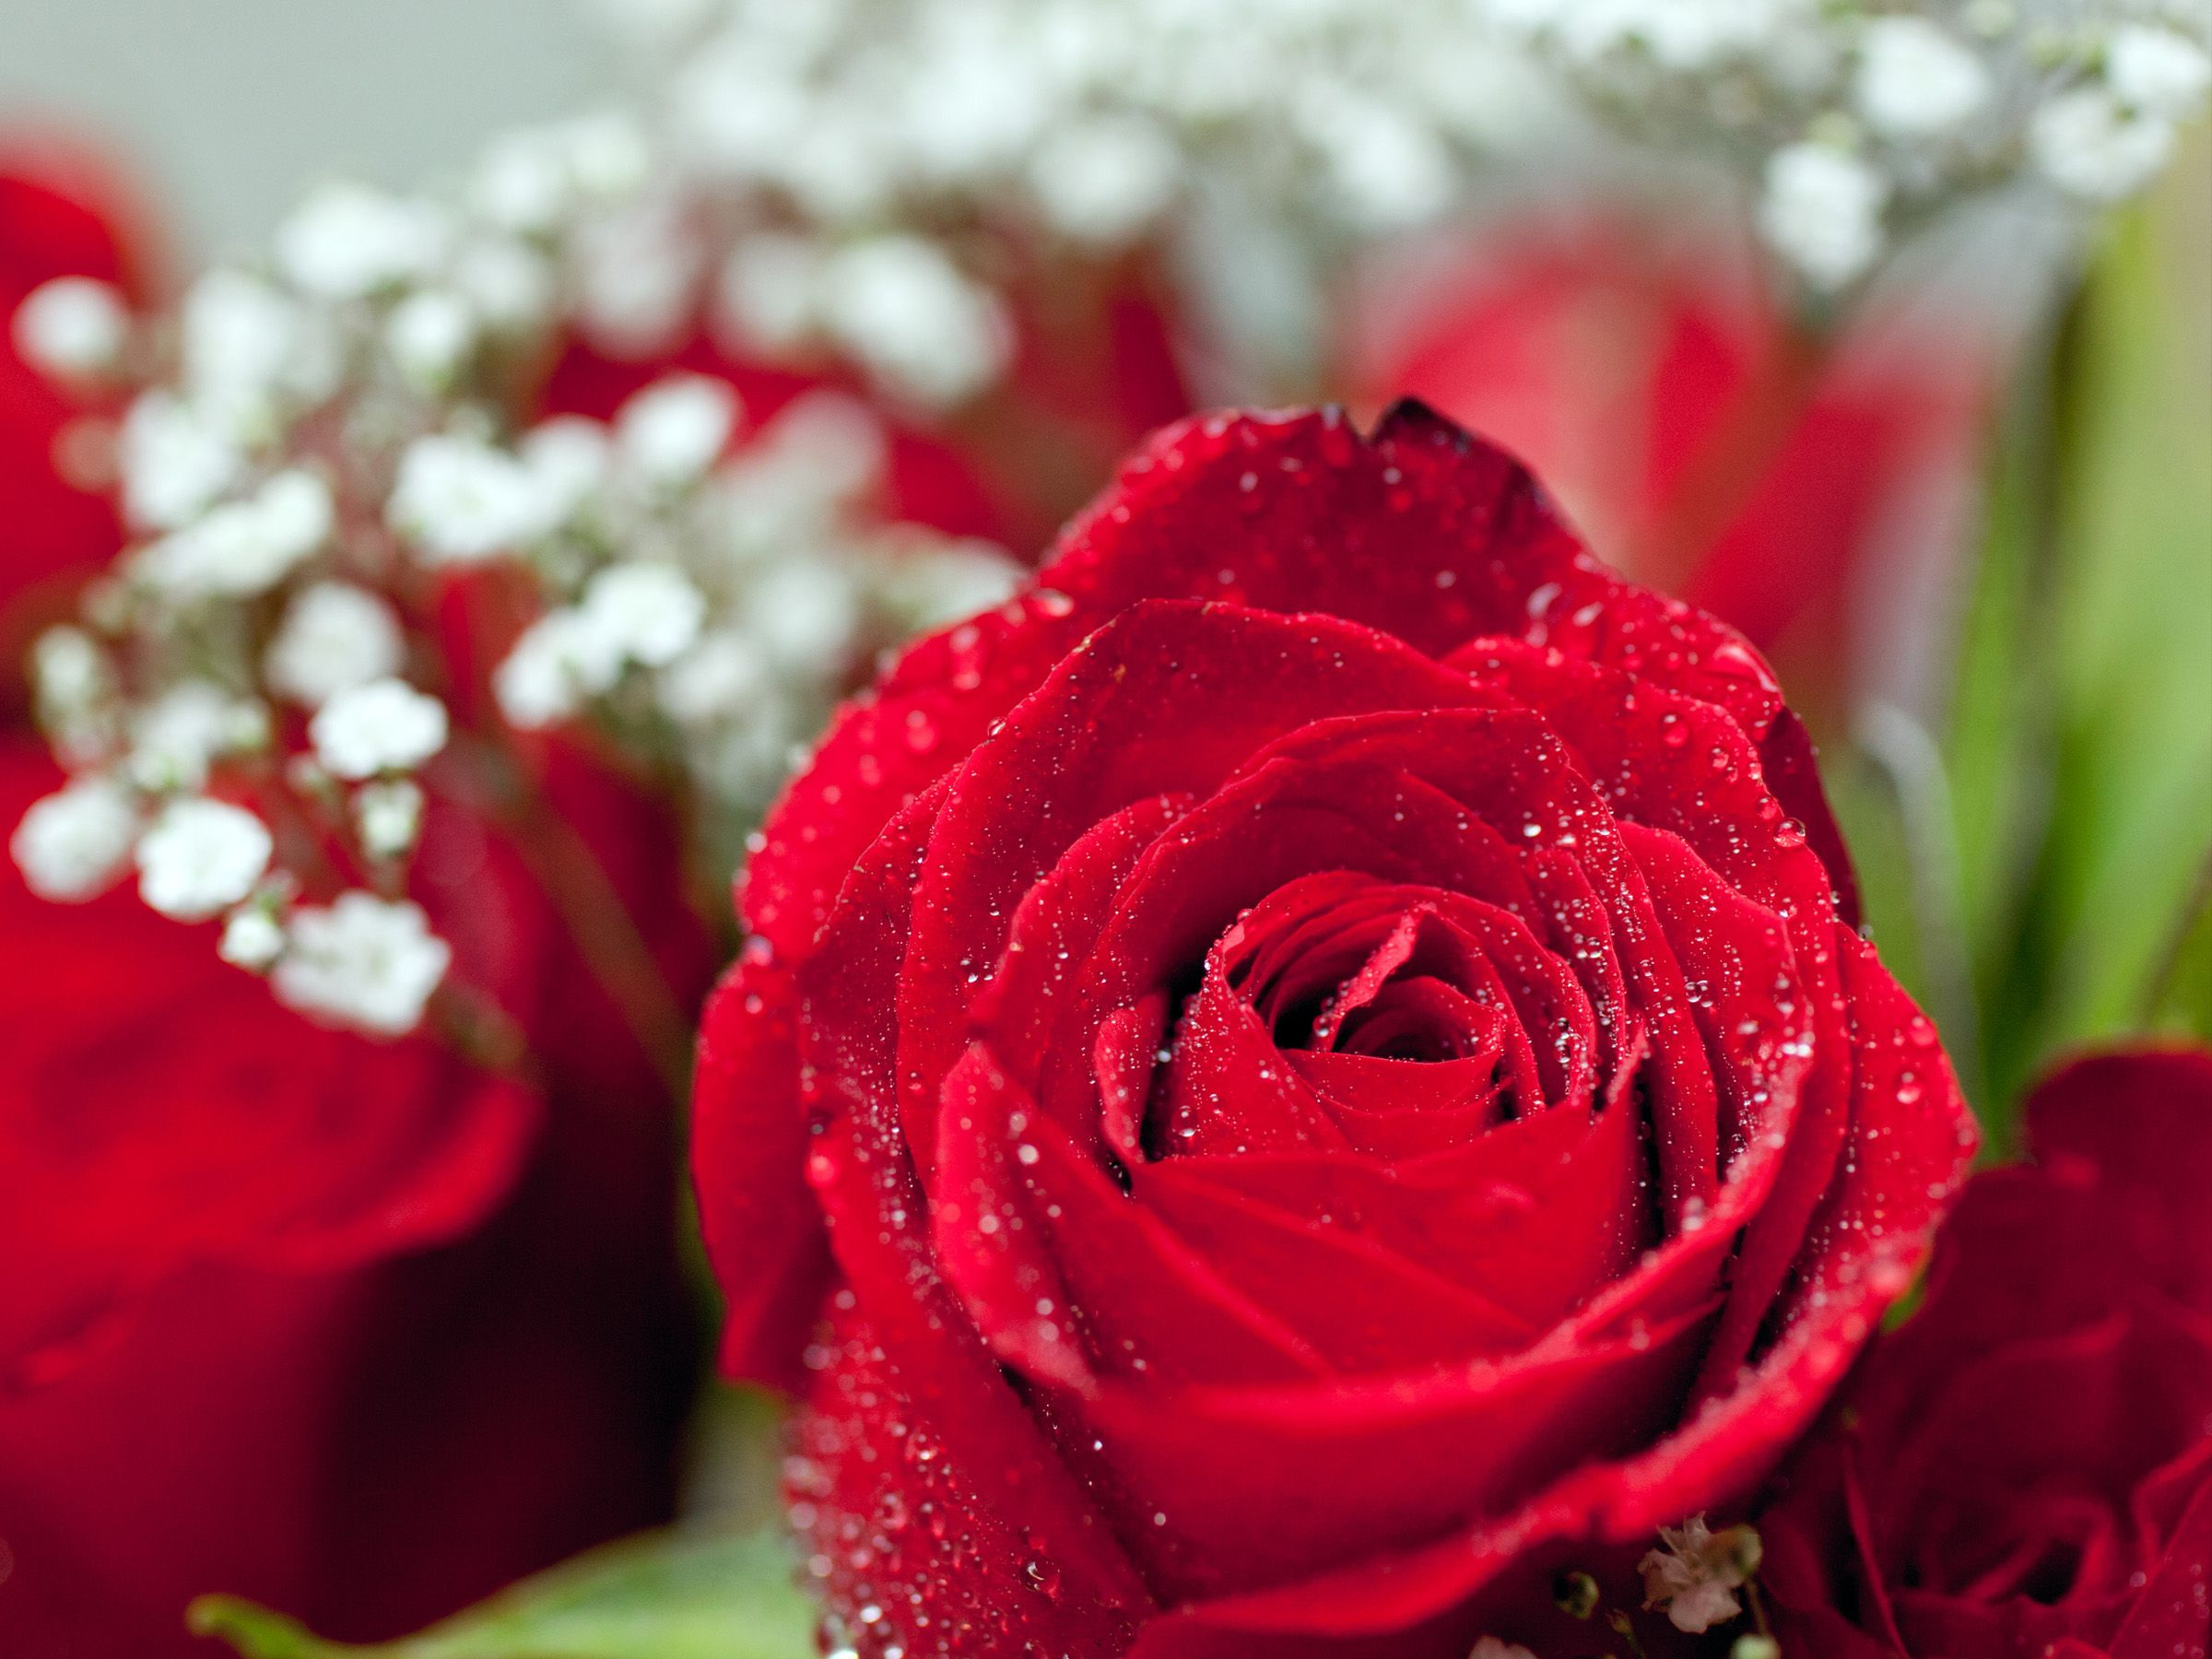 Pin by mens in black on test pinterest flower images red roses how to grow long stem roses at home a bouquet of long stem roses can be a beautiful way to make a statement a single graceful flower atop a long izmirmasajfo